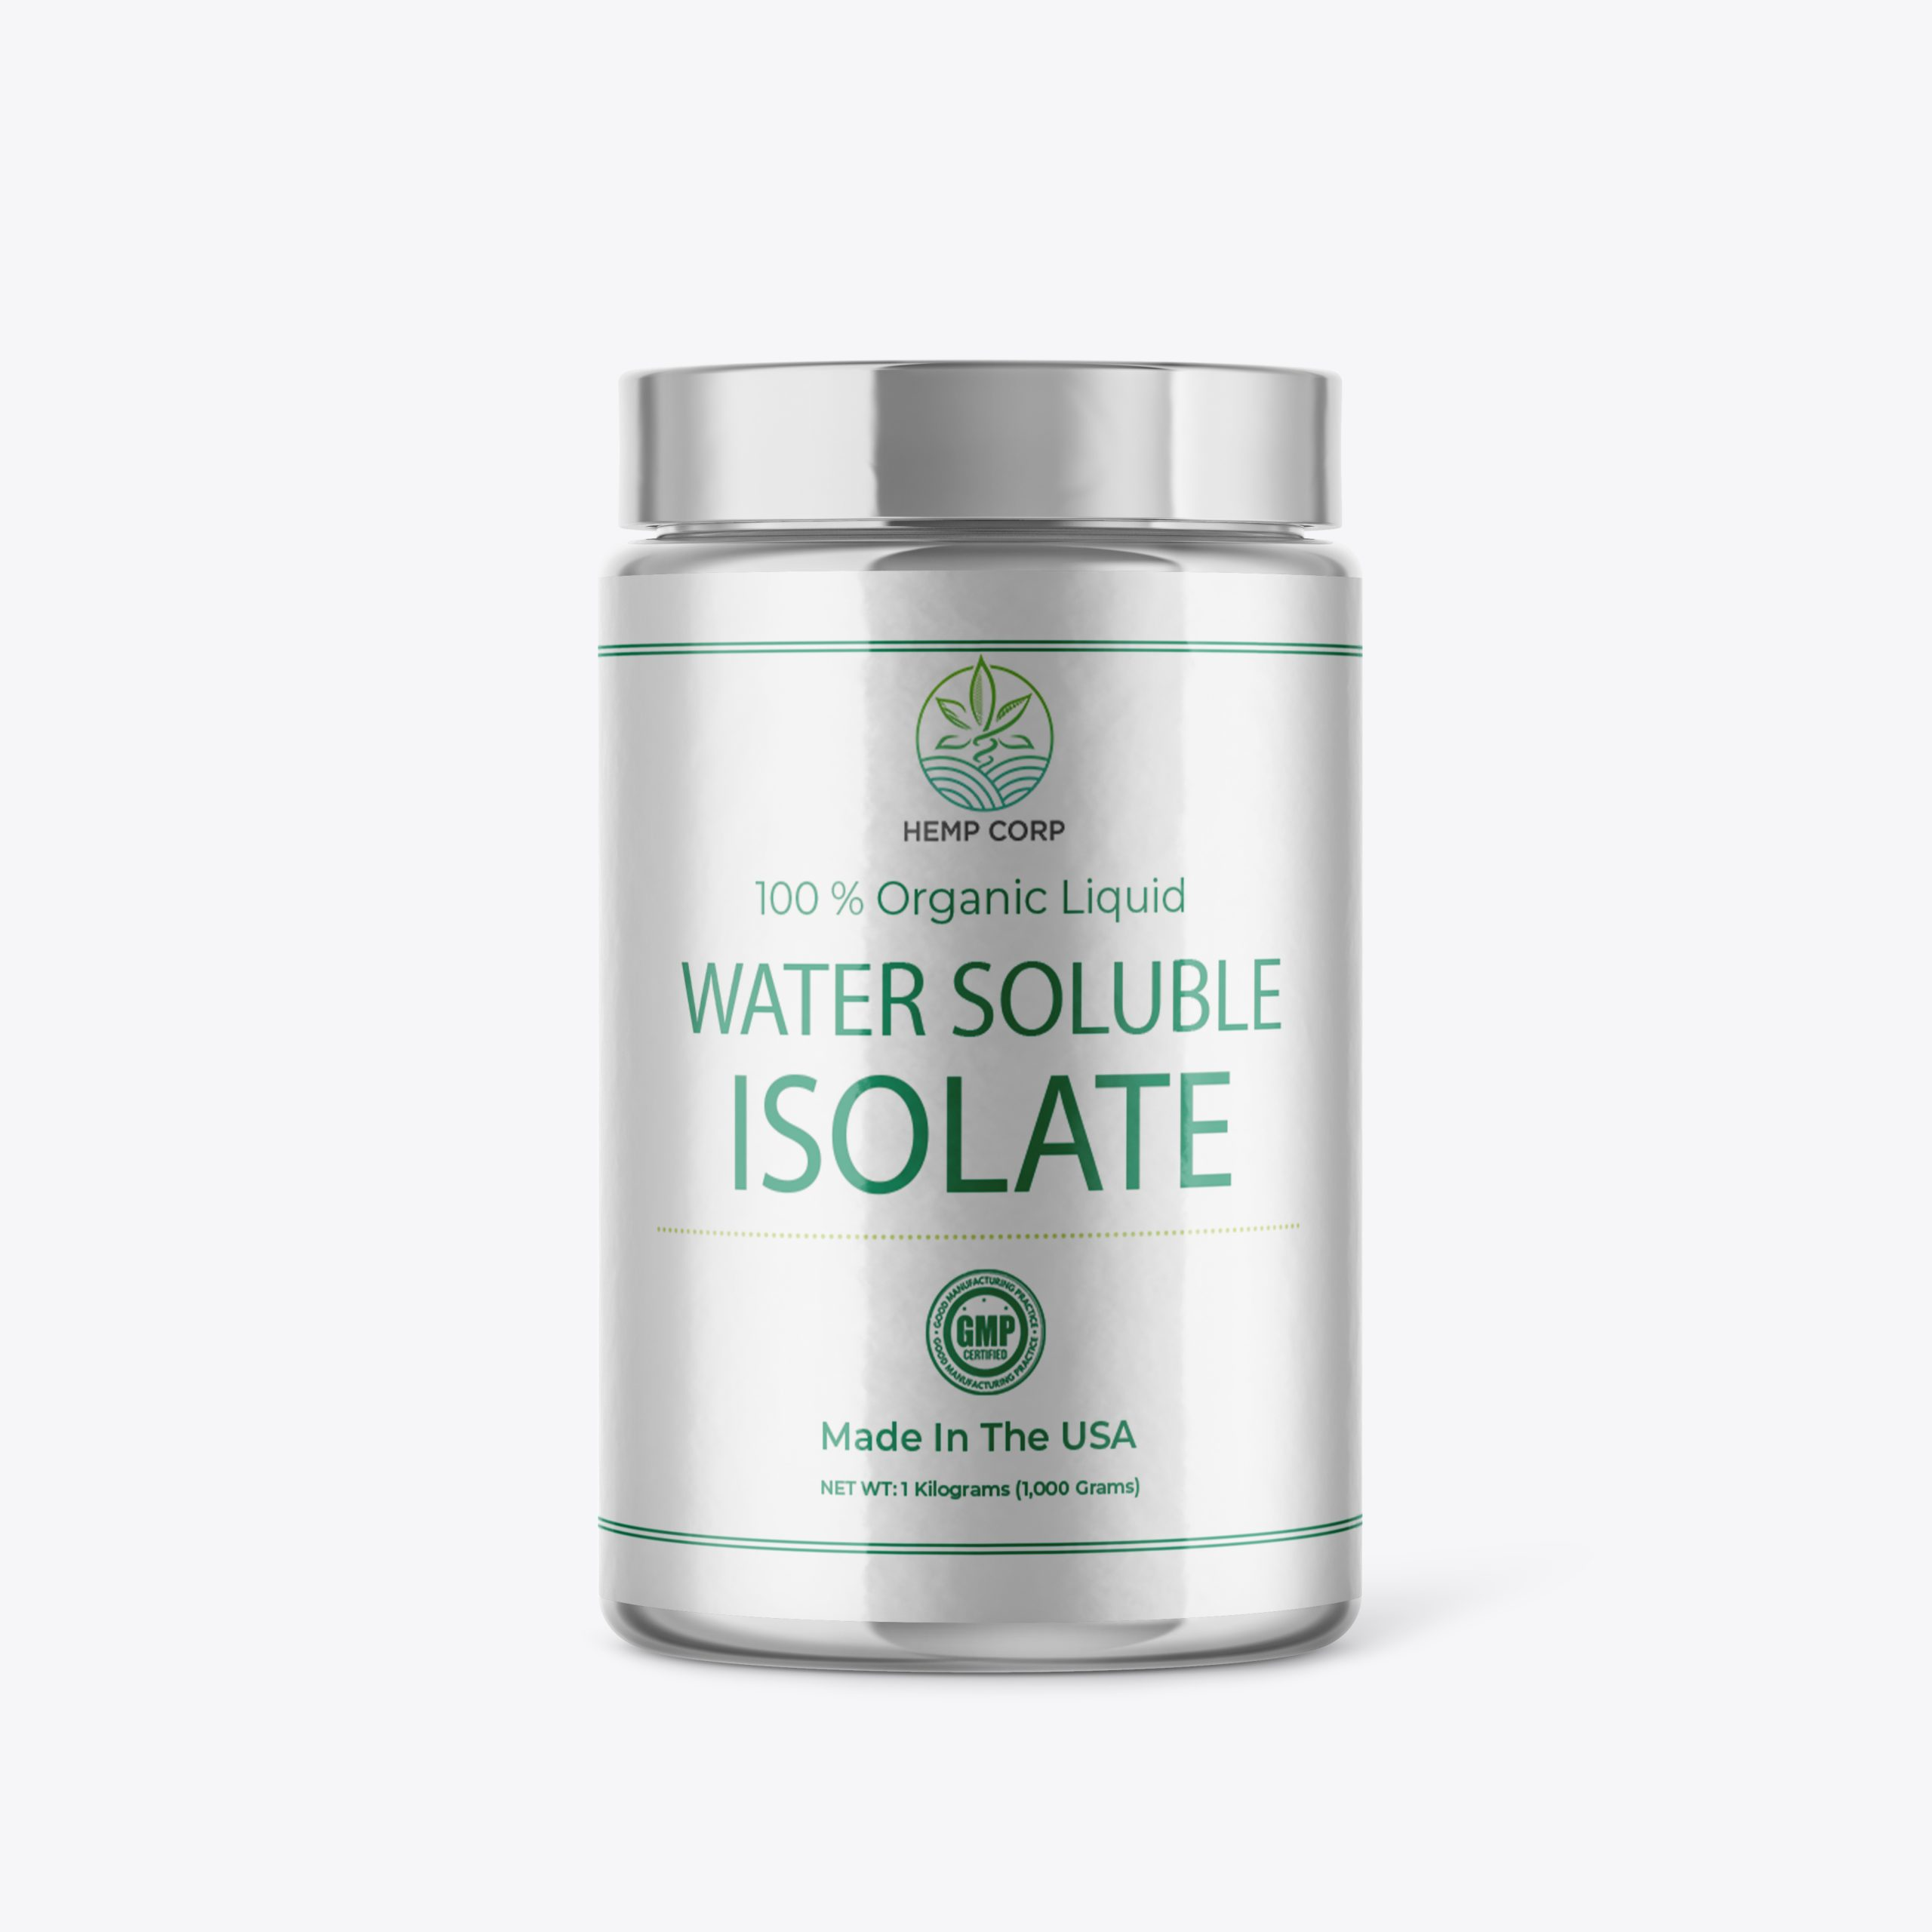 Water Soluble Isolate Liquid